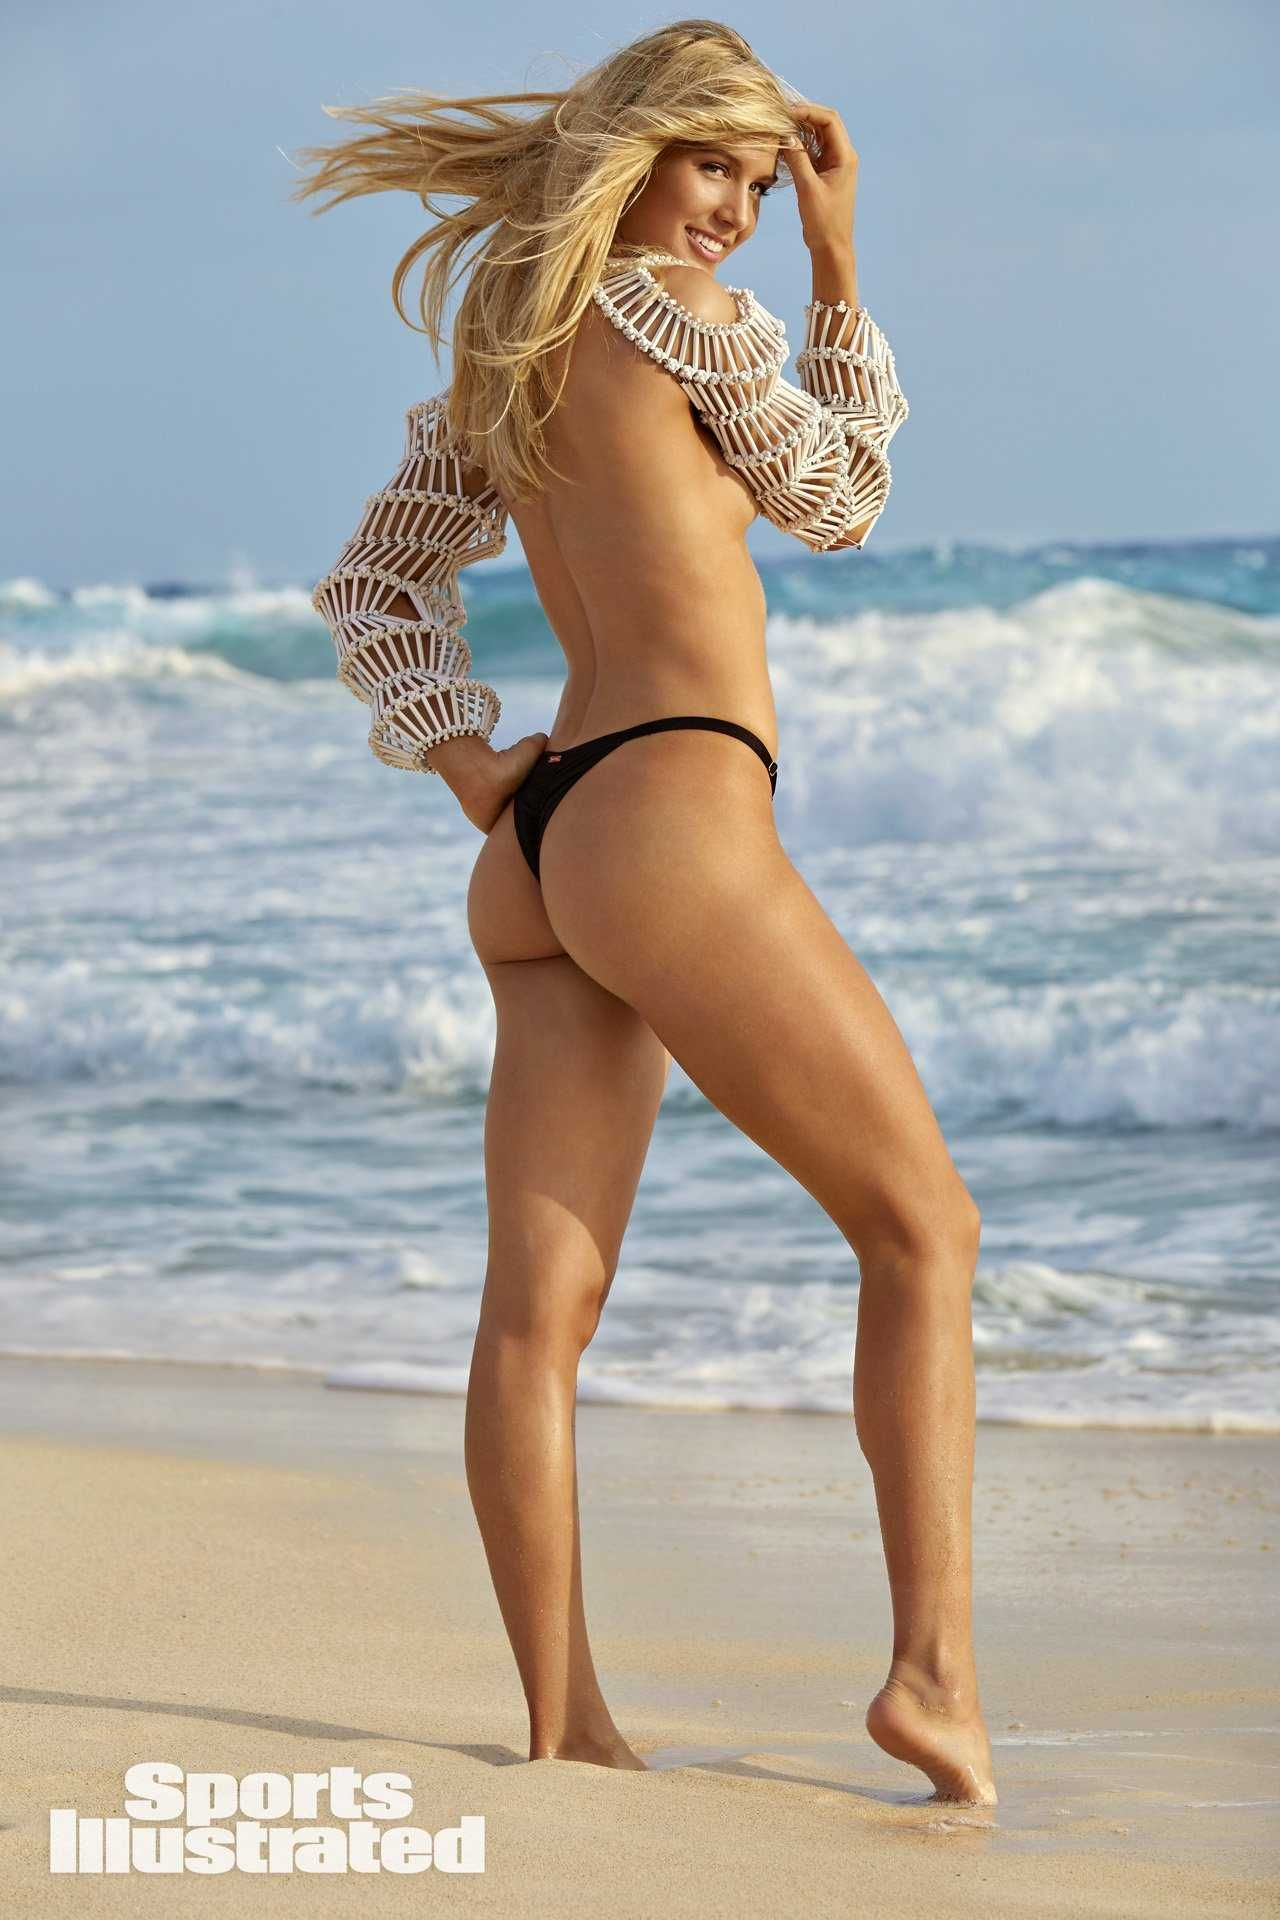 Eugenie Bouchard in Sports Illustrated Swimsuit Issue 2018 ...